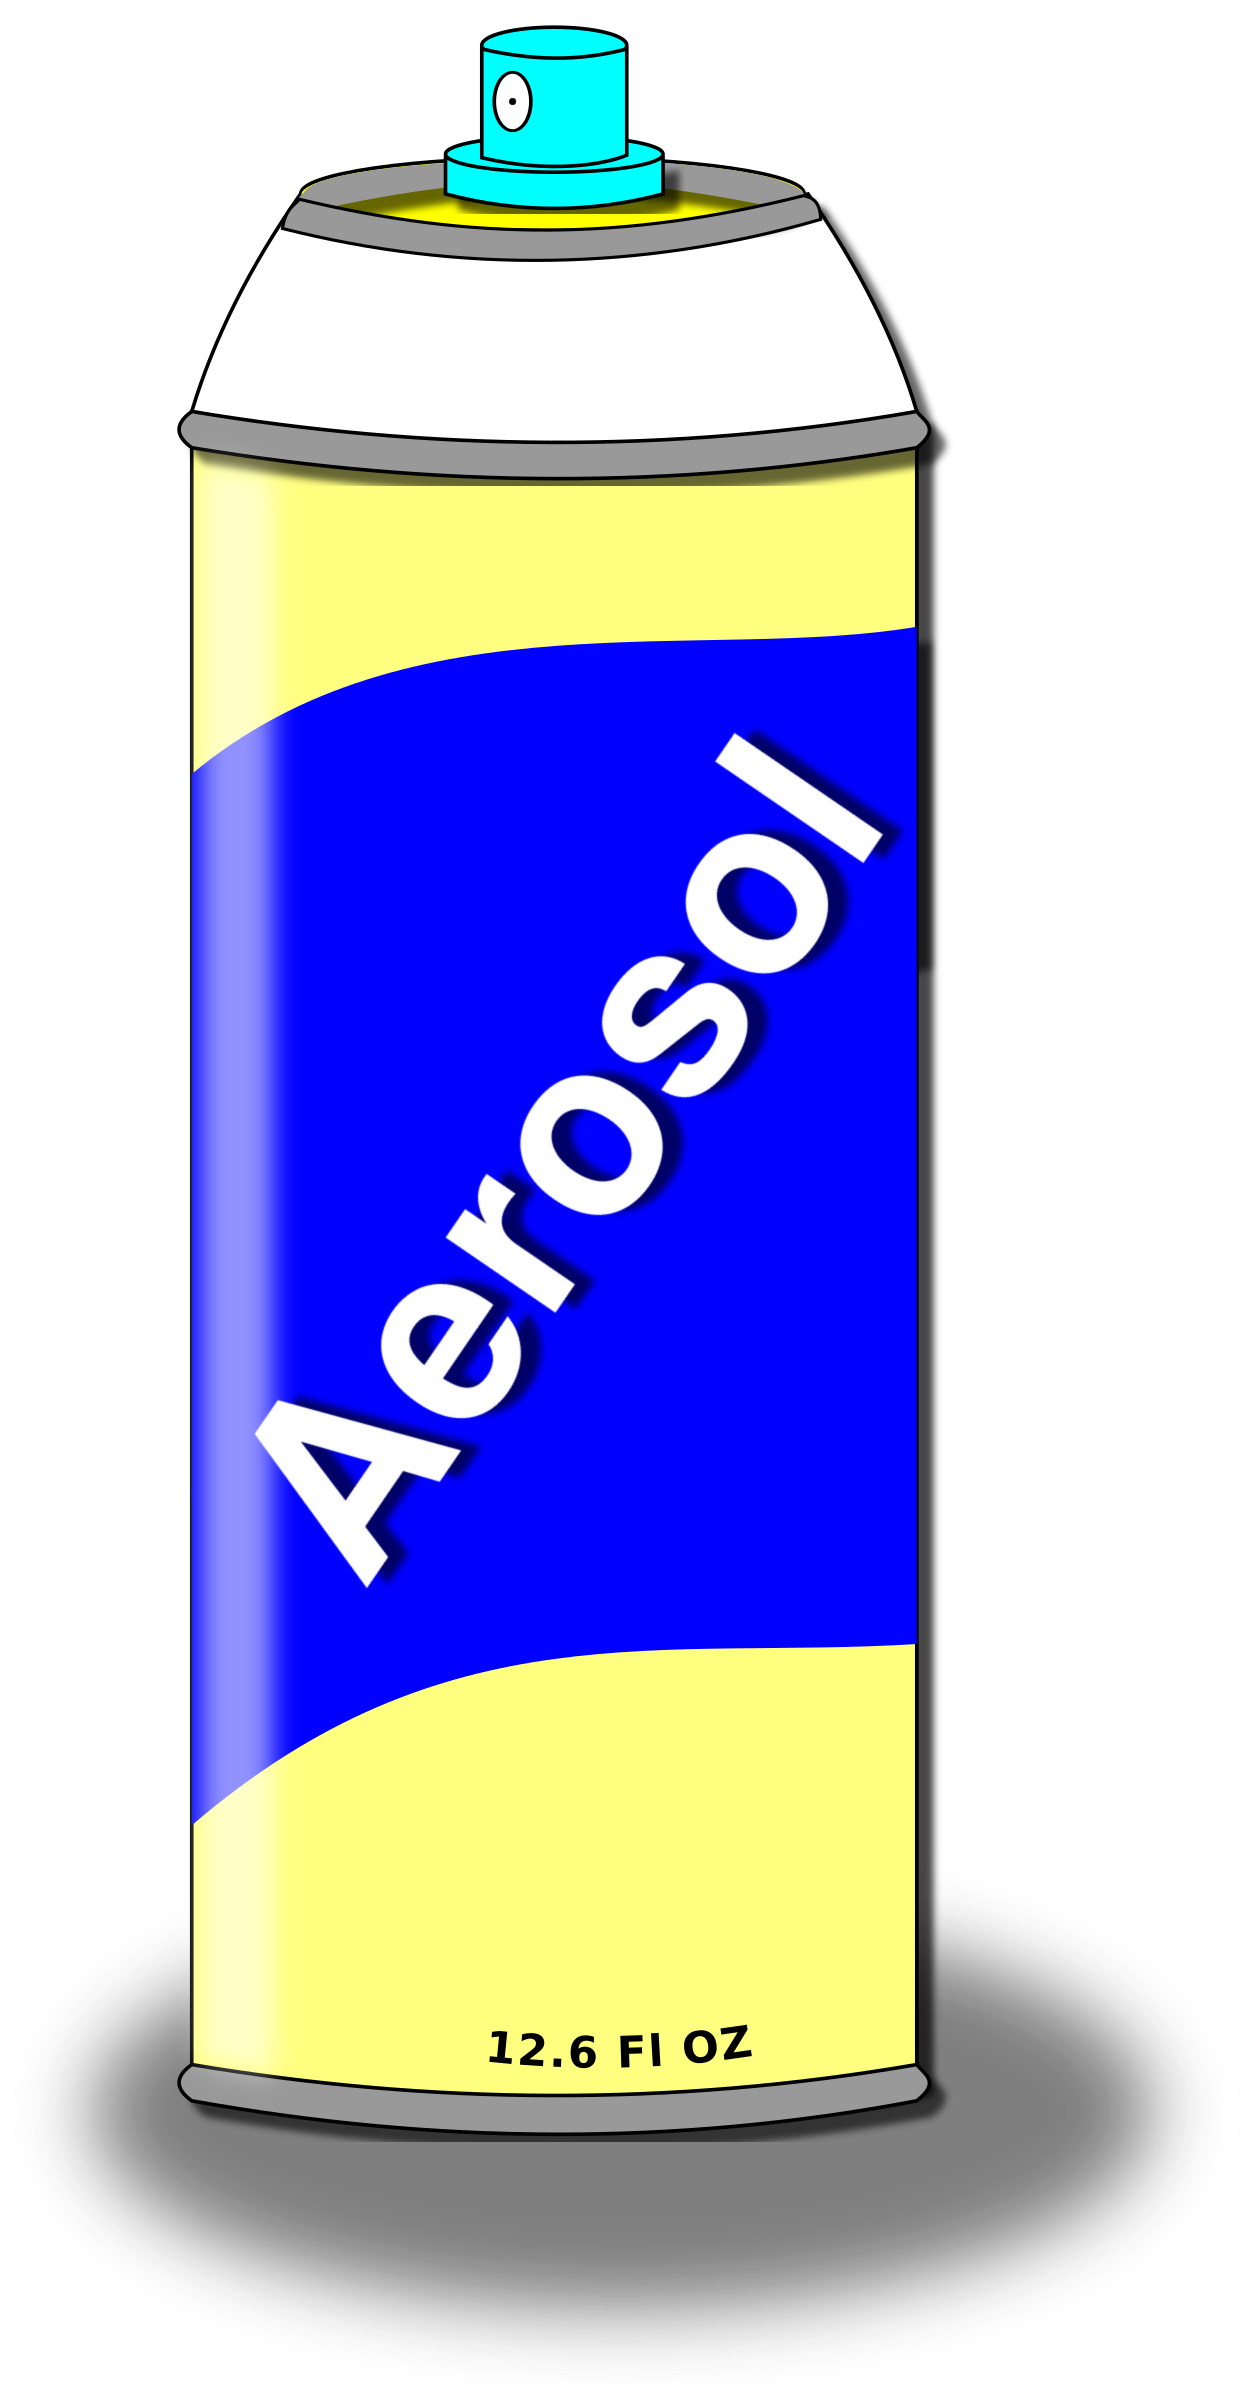 Spray clipart spray can. Aerosol big image png